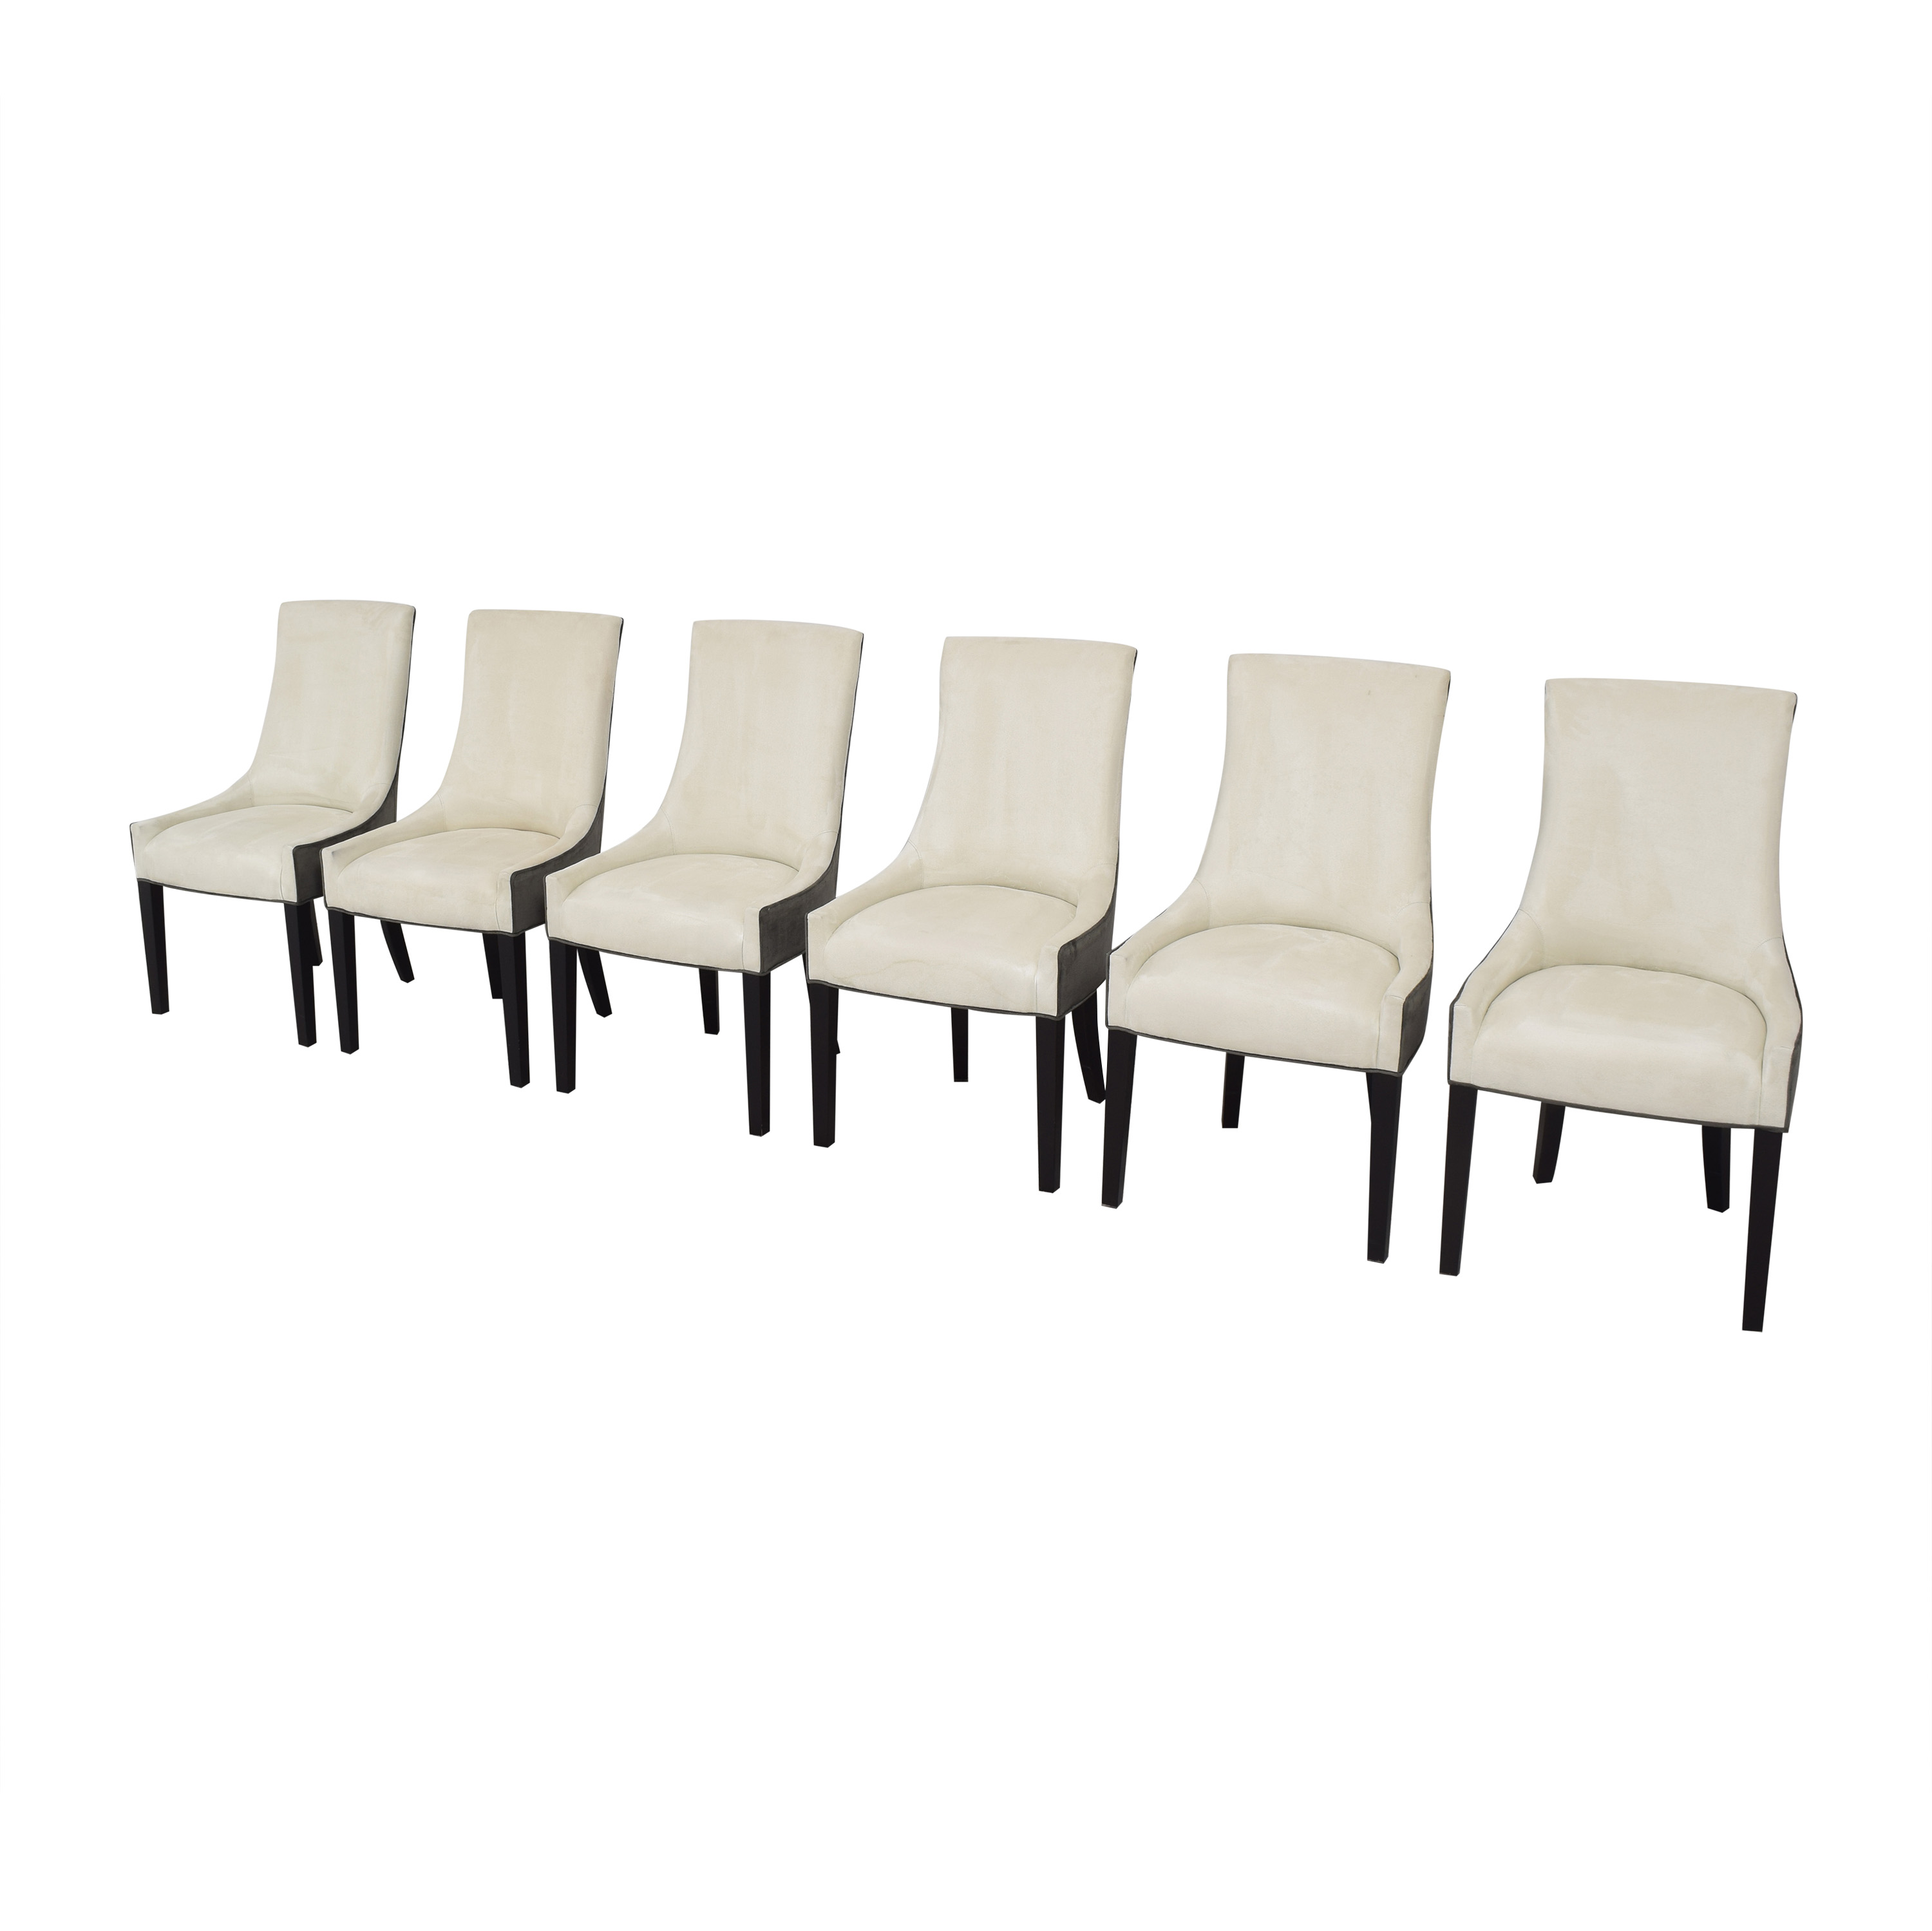 Mitchell Gold + Bob Williams Mitchell Gold + Bob Williams Ada Side Dining Chairs second hand